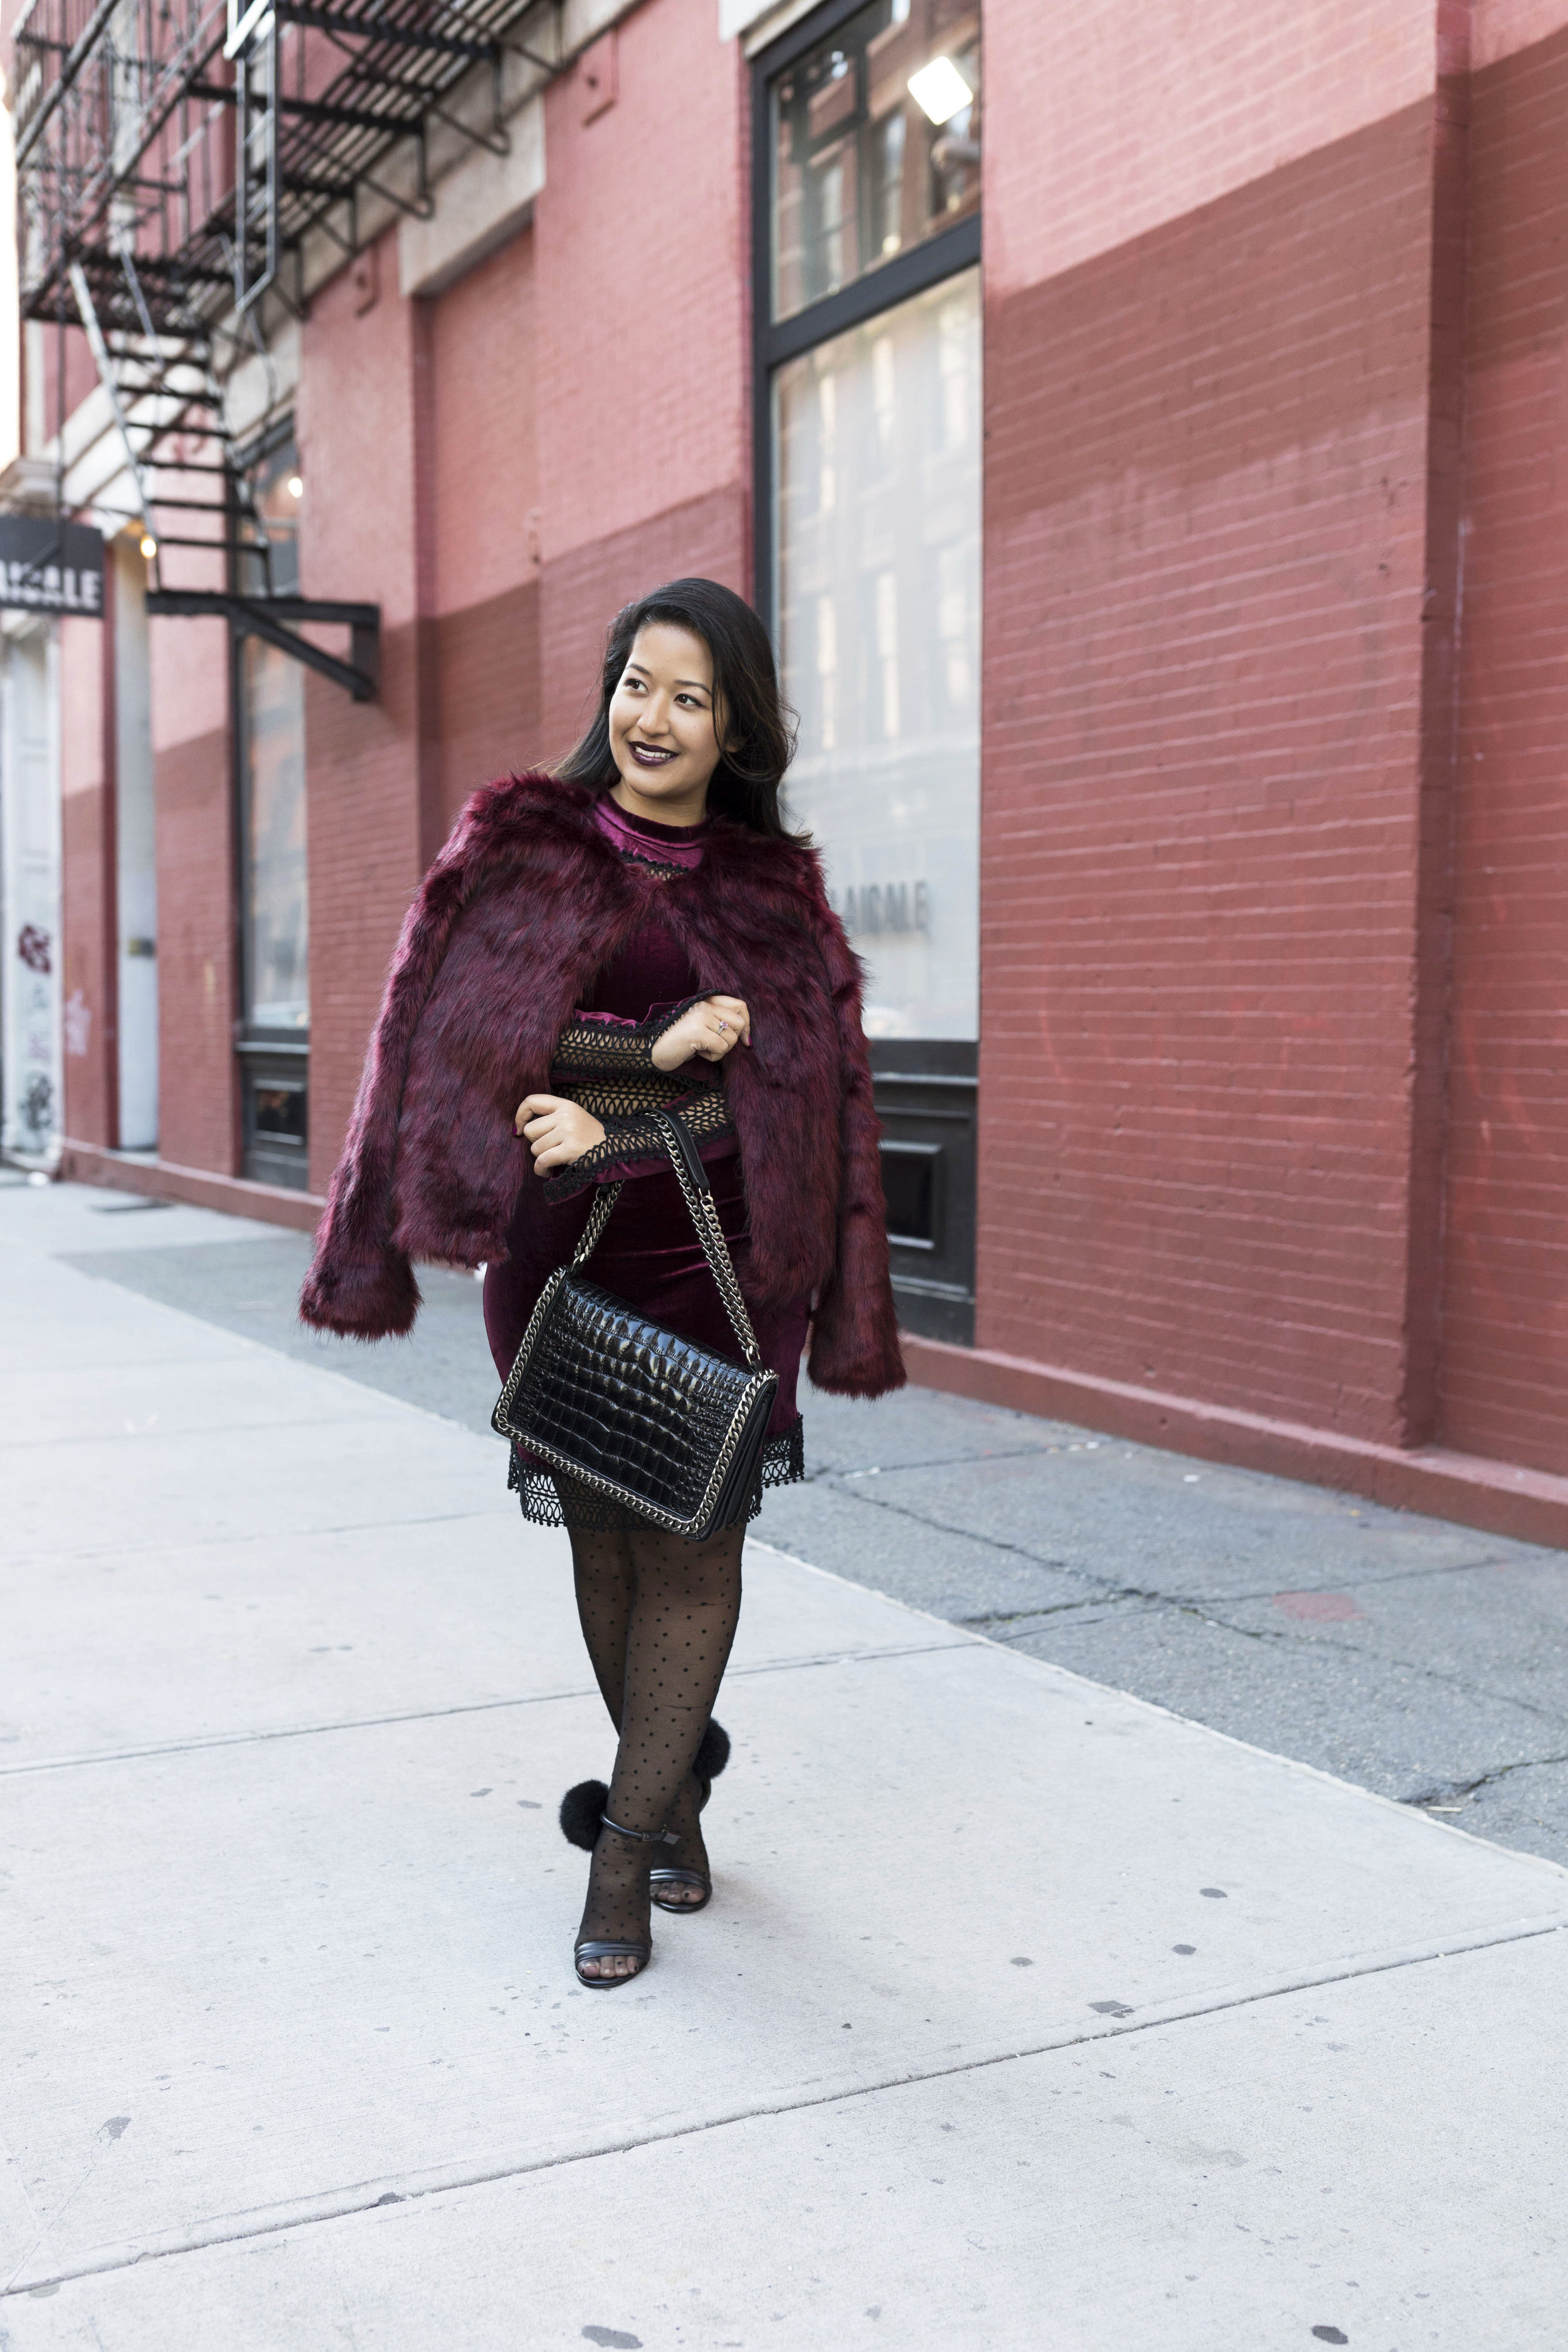 Krity S x Holiday Outfit x Century 21 Burgundy Velvet Dress and Faux Fur6.jpg